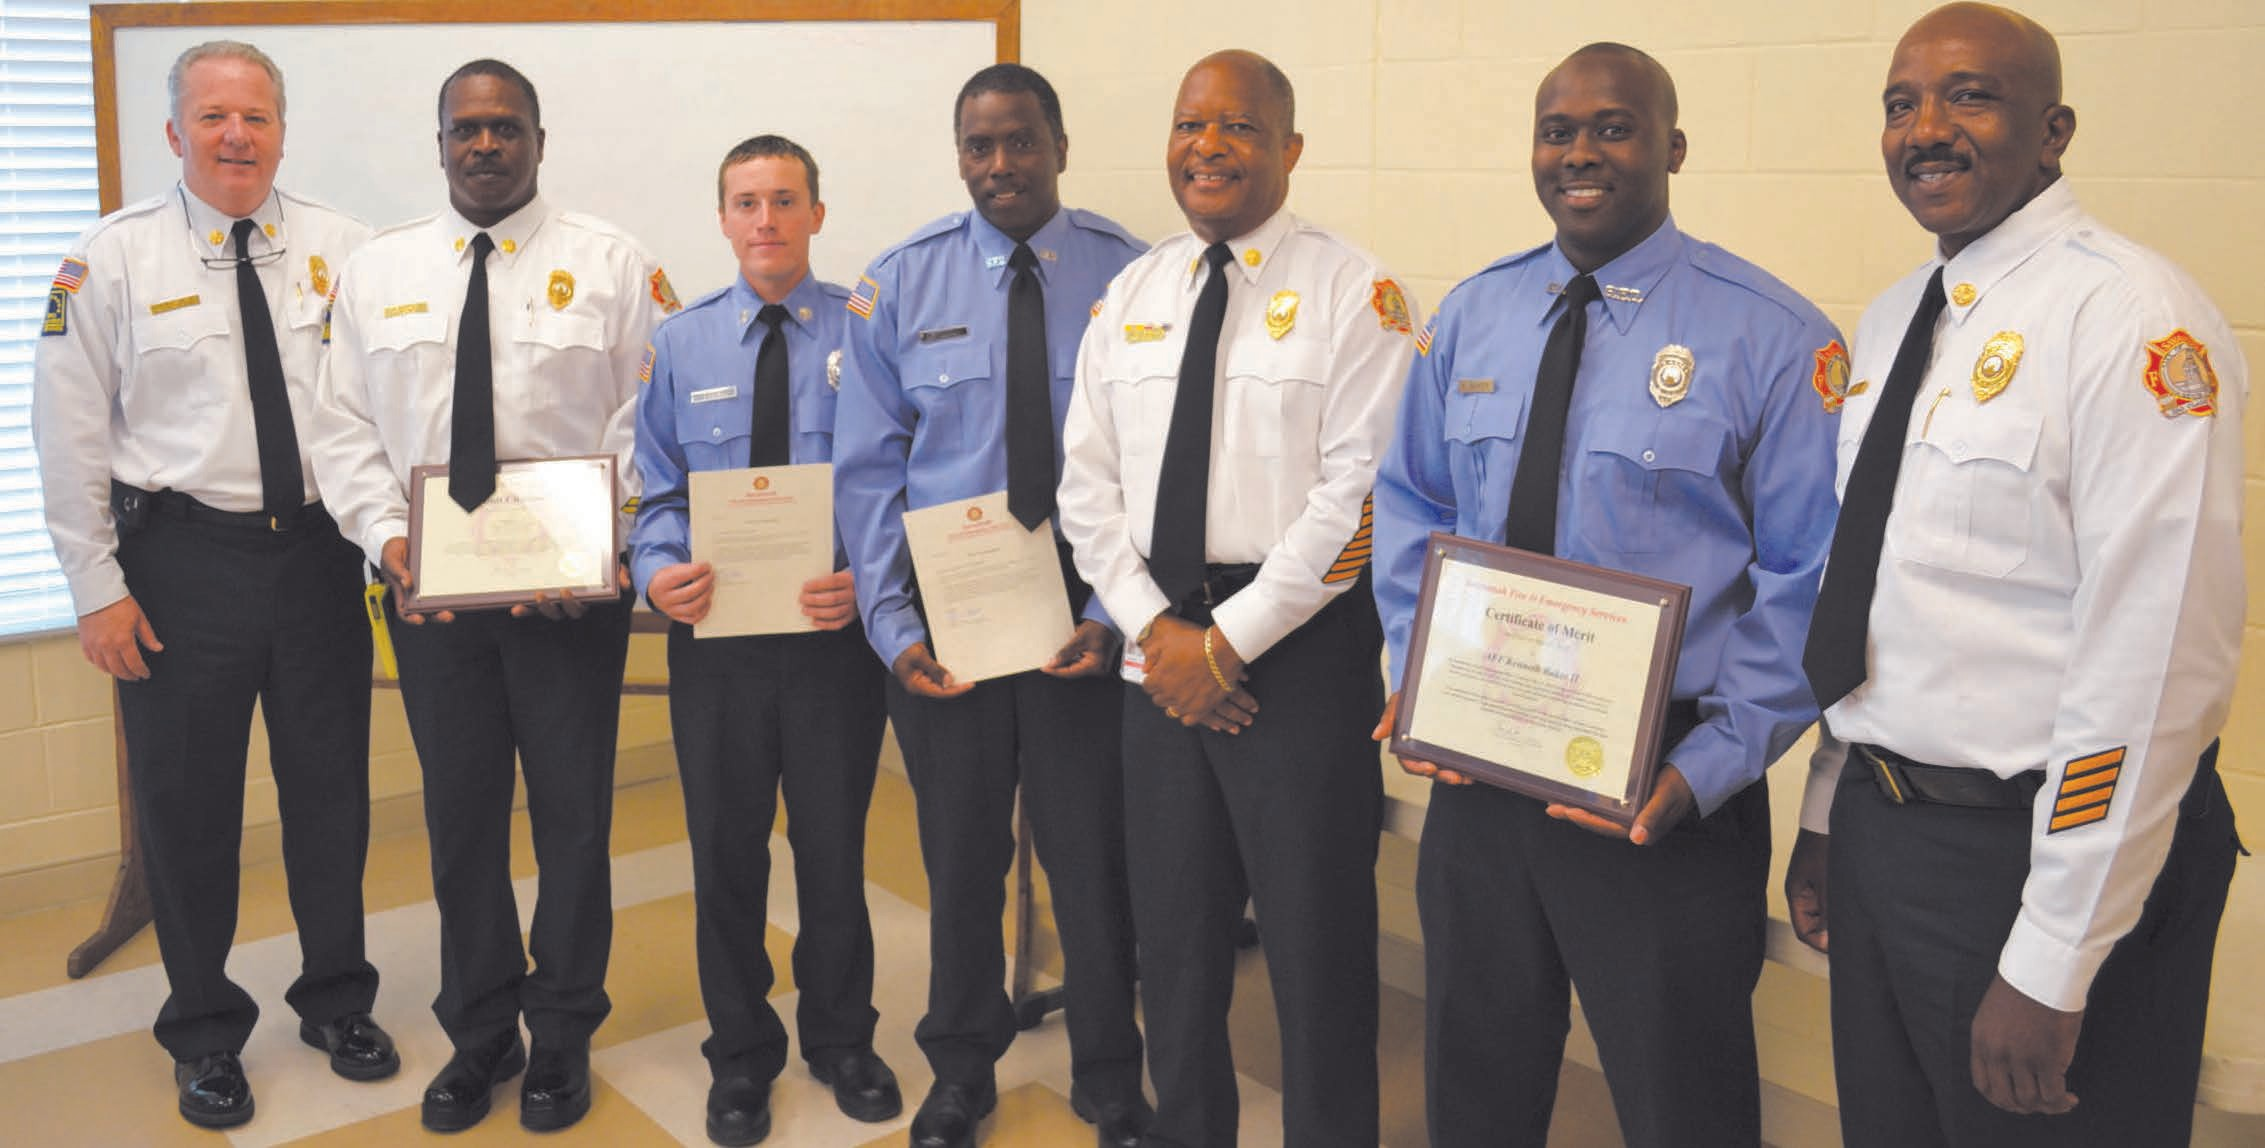 Savannah Fire Chief Charles G. Middleton presents awards to MFF Baker & Engine 6B firefighters